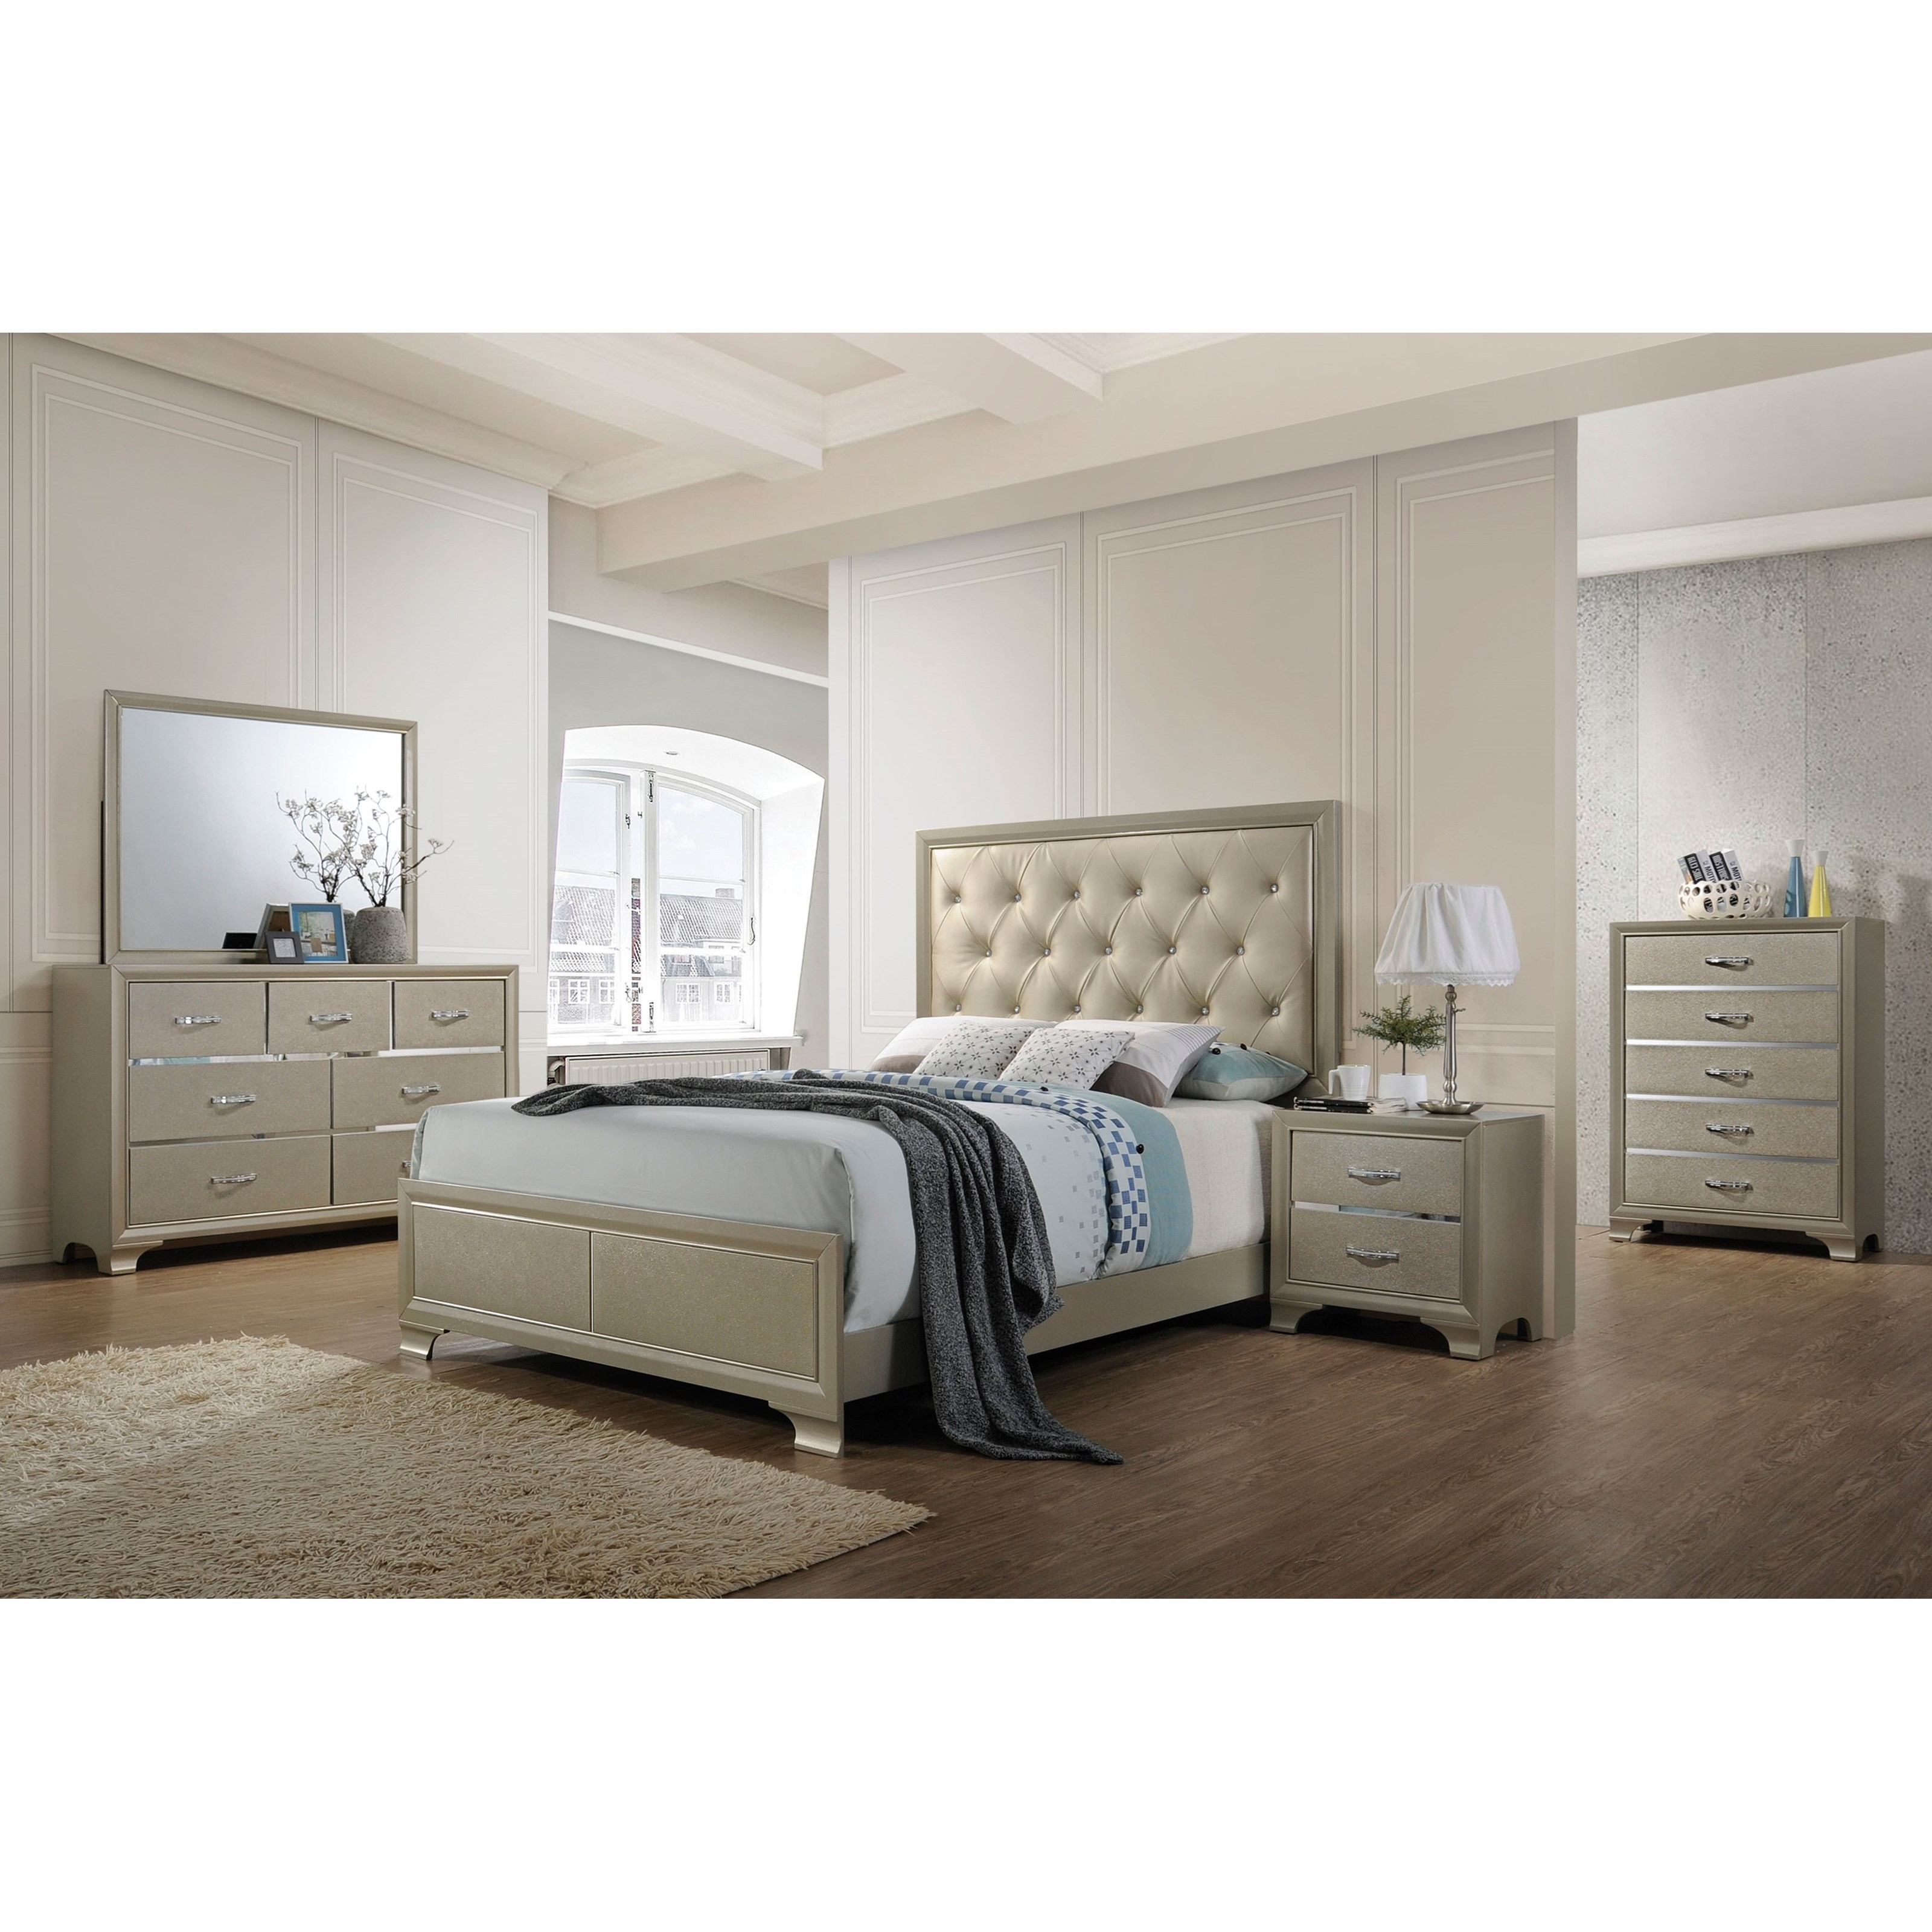 Carine King Bedroom Group by Acme Furniture at Carolina Direct